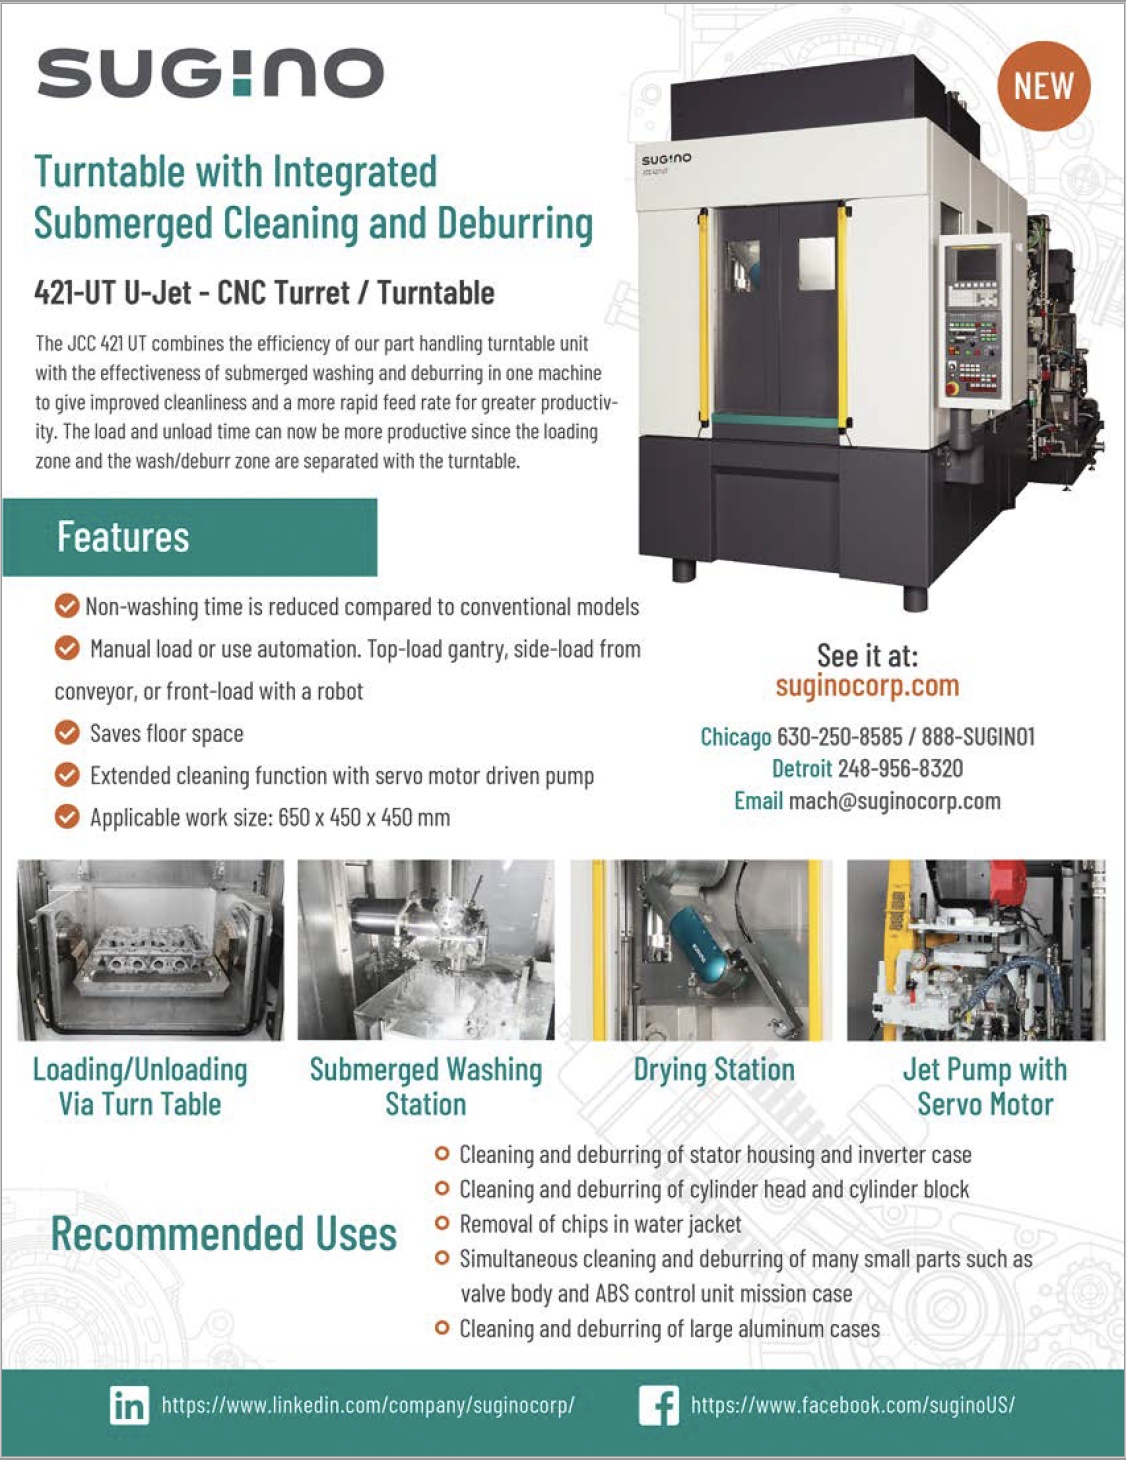 Sugino JCC 421-UT Submerged Cleaning Deburring